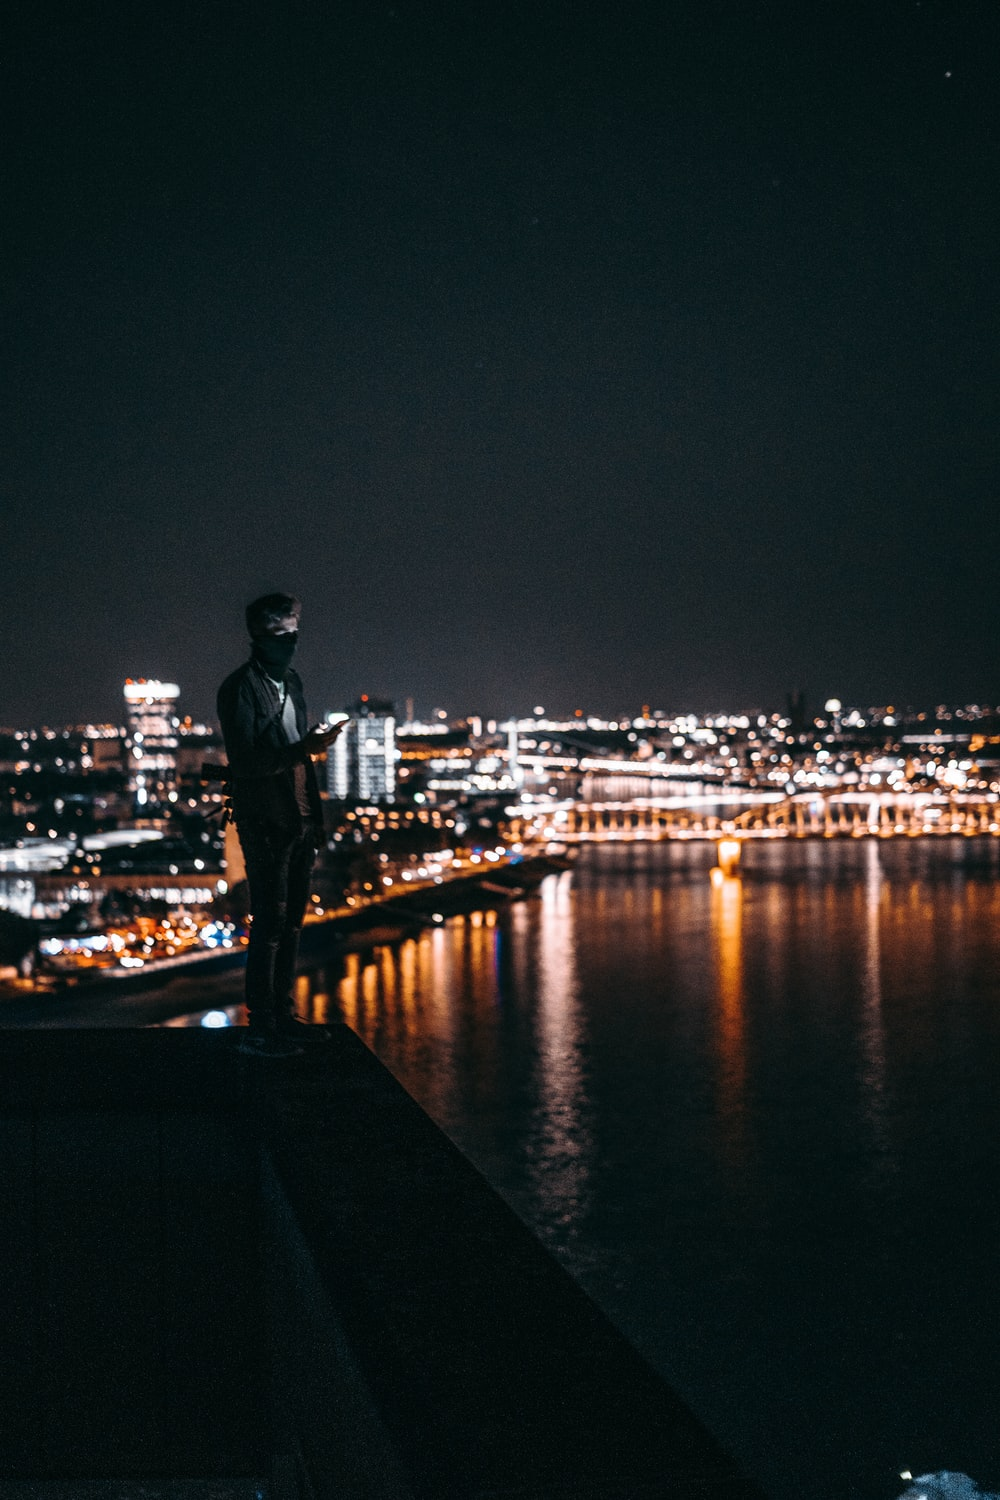 man standing on ledge in front of body of water